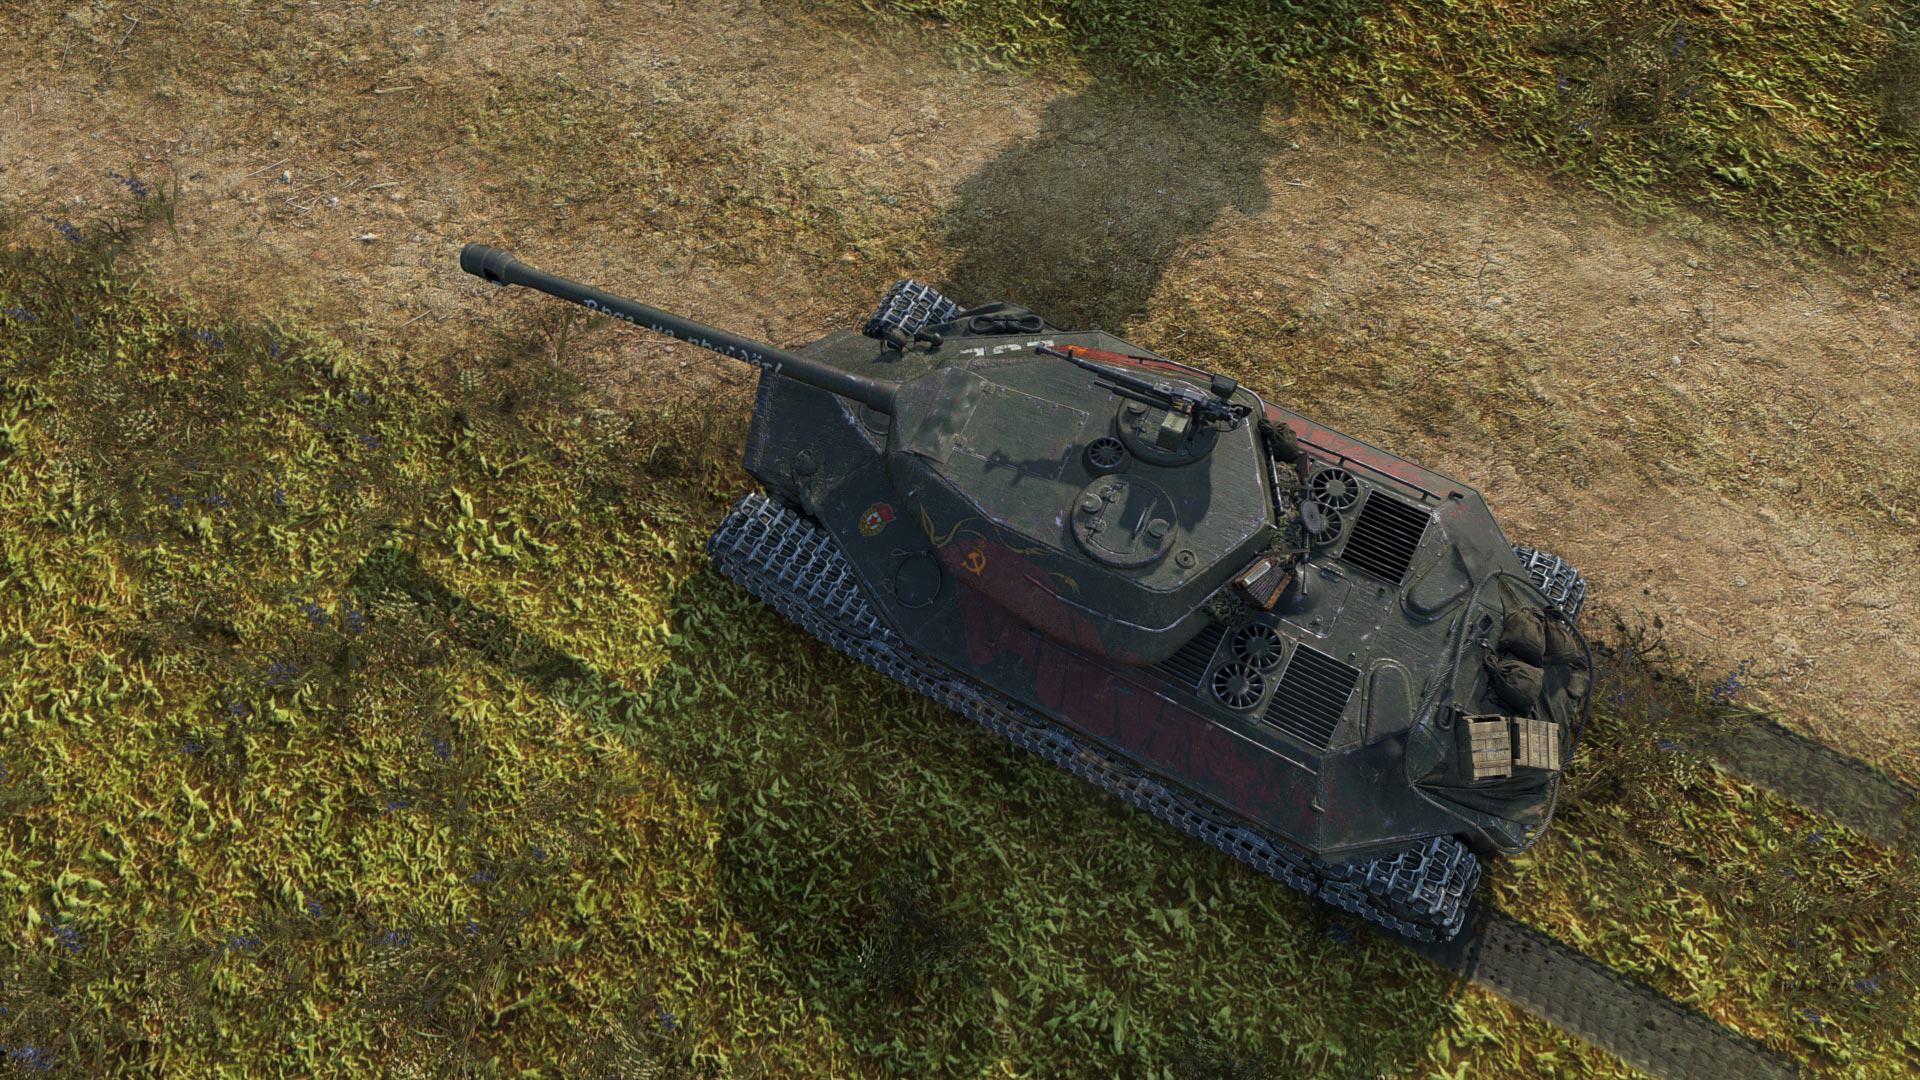 The Object 252U Defender is one of the newest additions to the Premium tank line-up and is already making a name for itself as one of the best Premium tanks to farm credits.